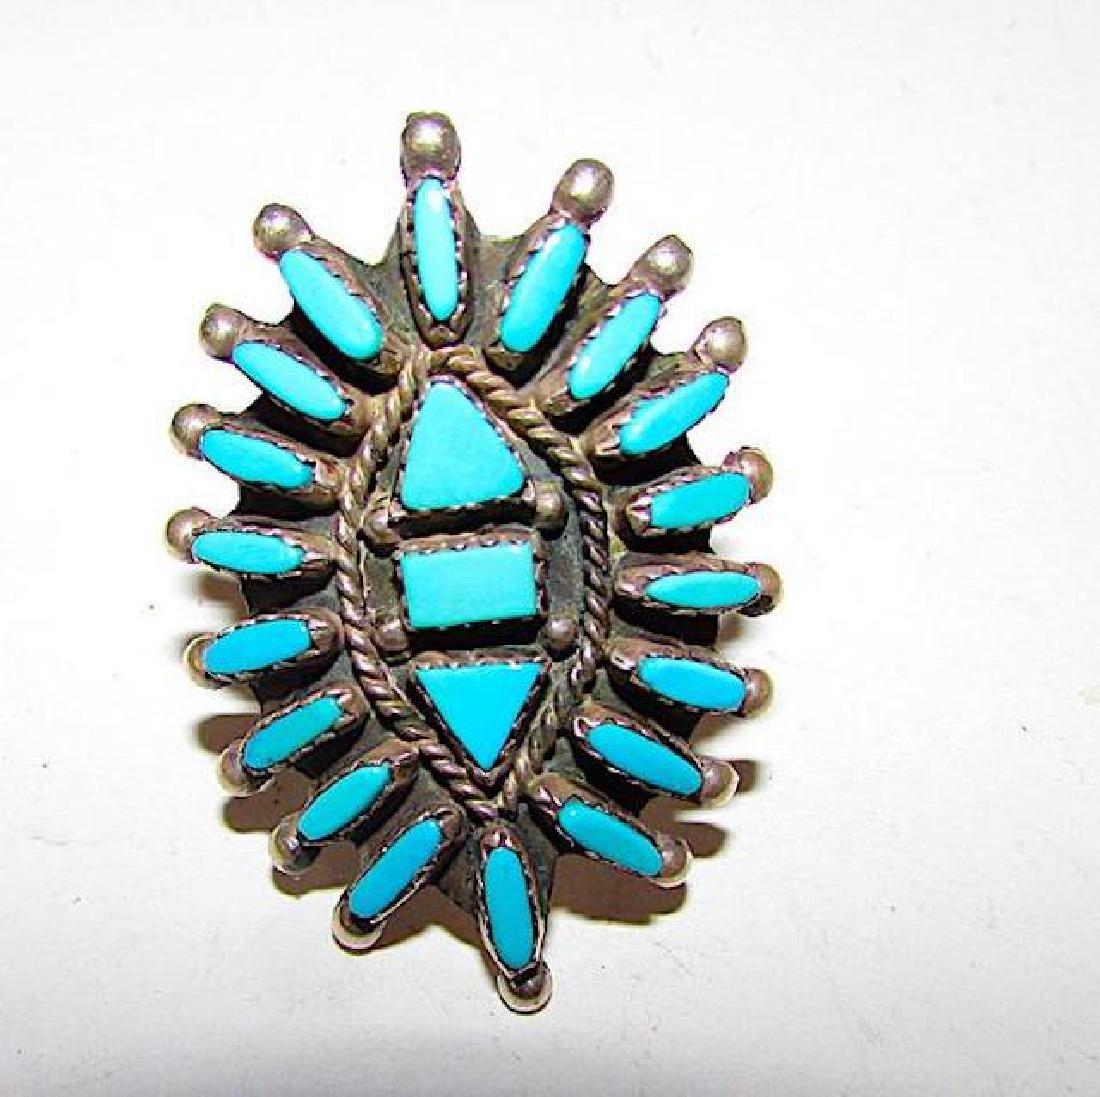 Zuni Sterling Silver Turquoise Cluster Ring Size 9 - 2